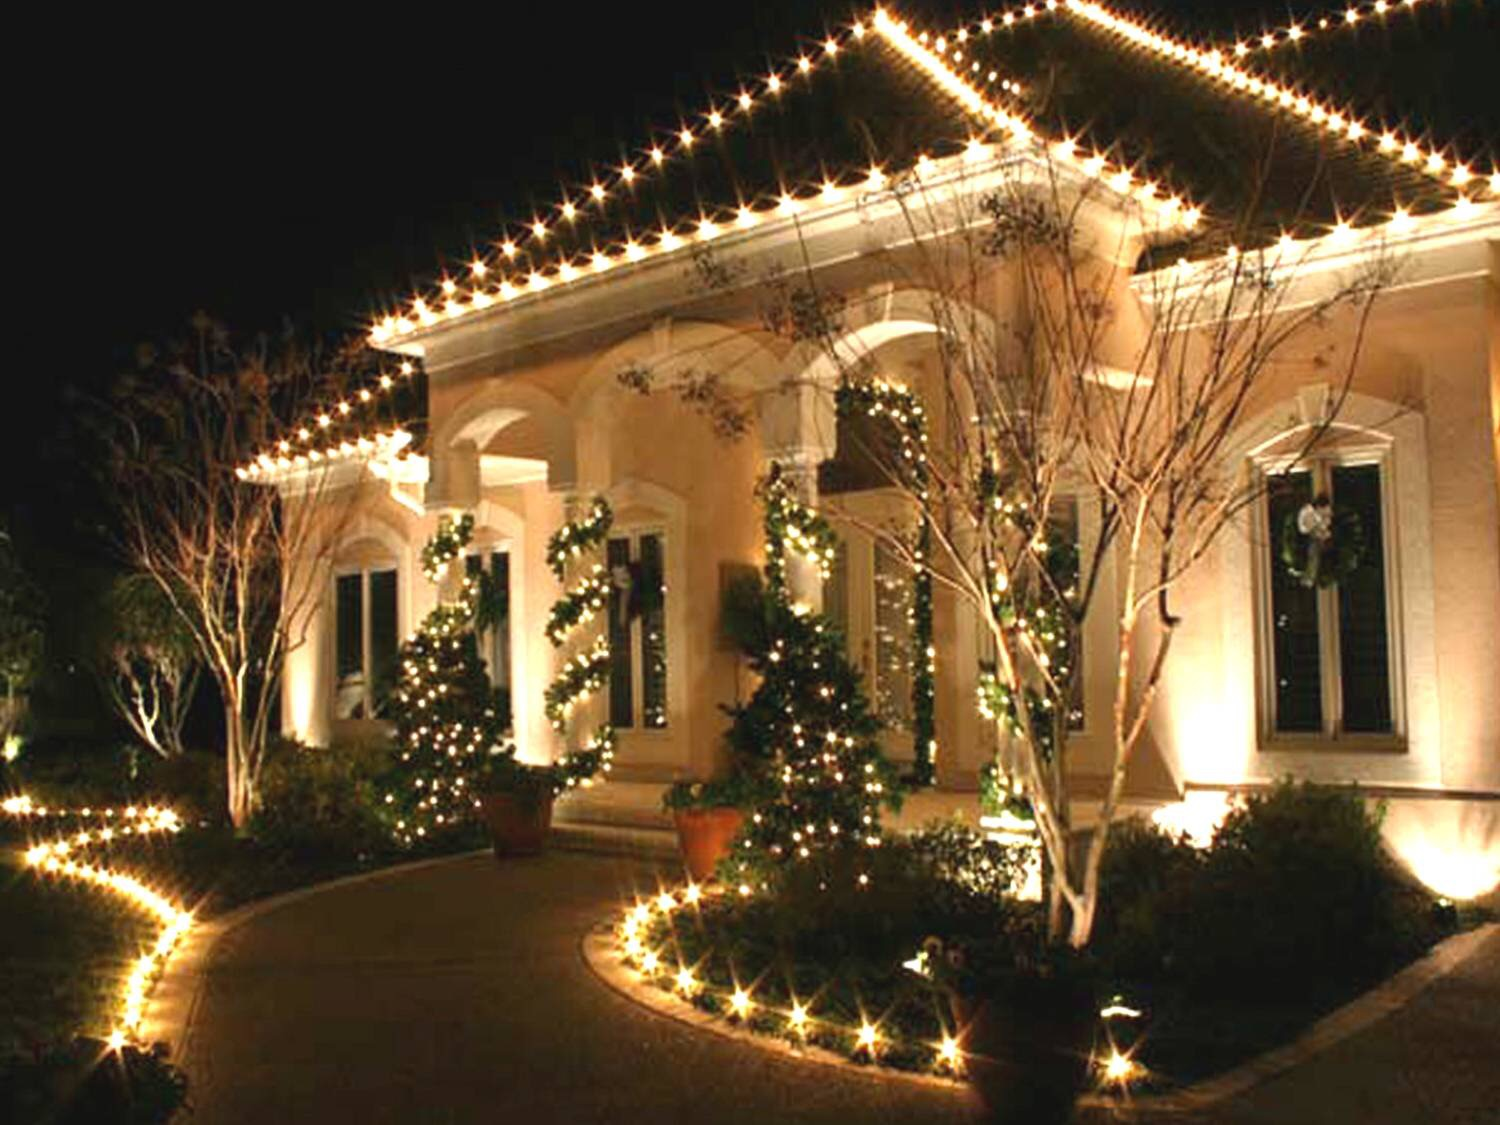 Led Christmas Lights White.The Differences Between Pure White Led Warm White Led